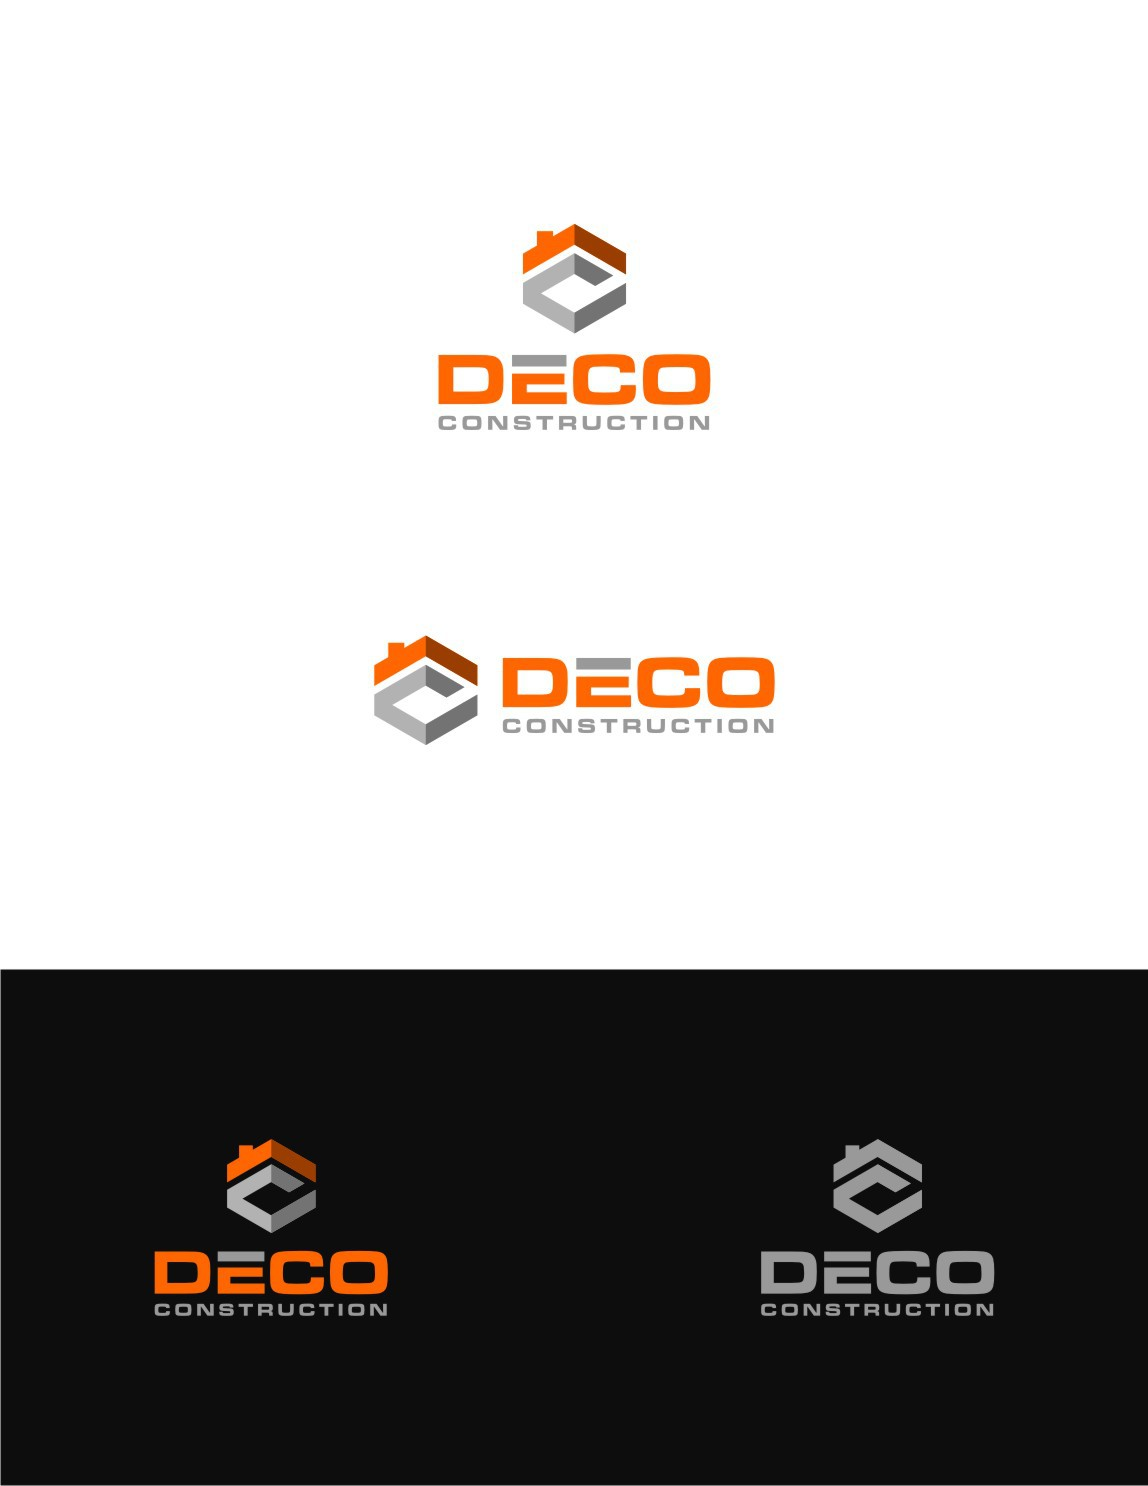 Create a professional logo for A Construction Firm catering to Southern California Home Owners